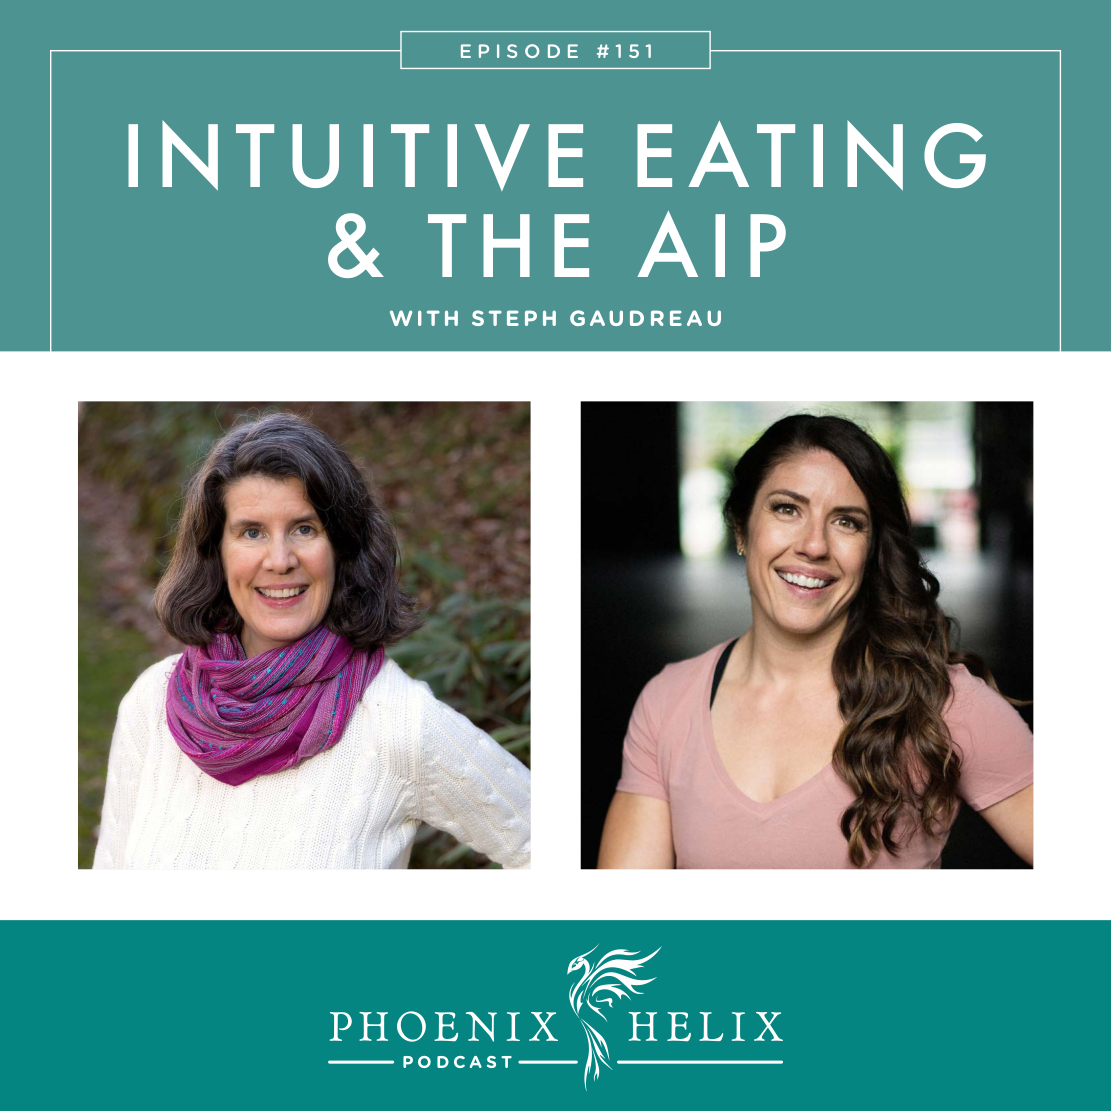 Intuitive Eating & The Paleo Autoimmune Protocol with Steph Gaudreau | Phoenix Helix Podcast